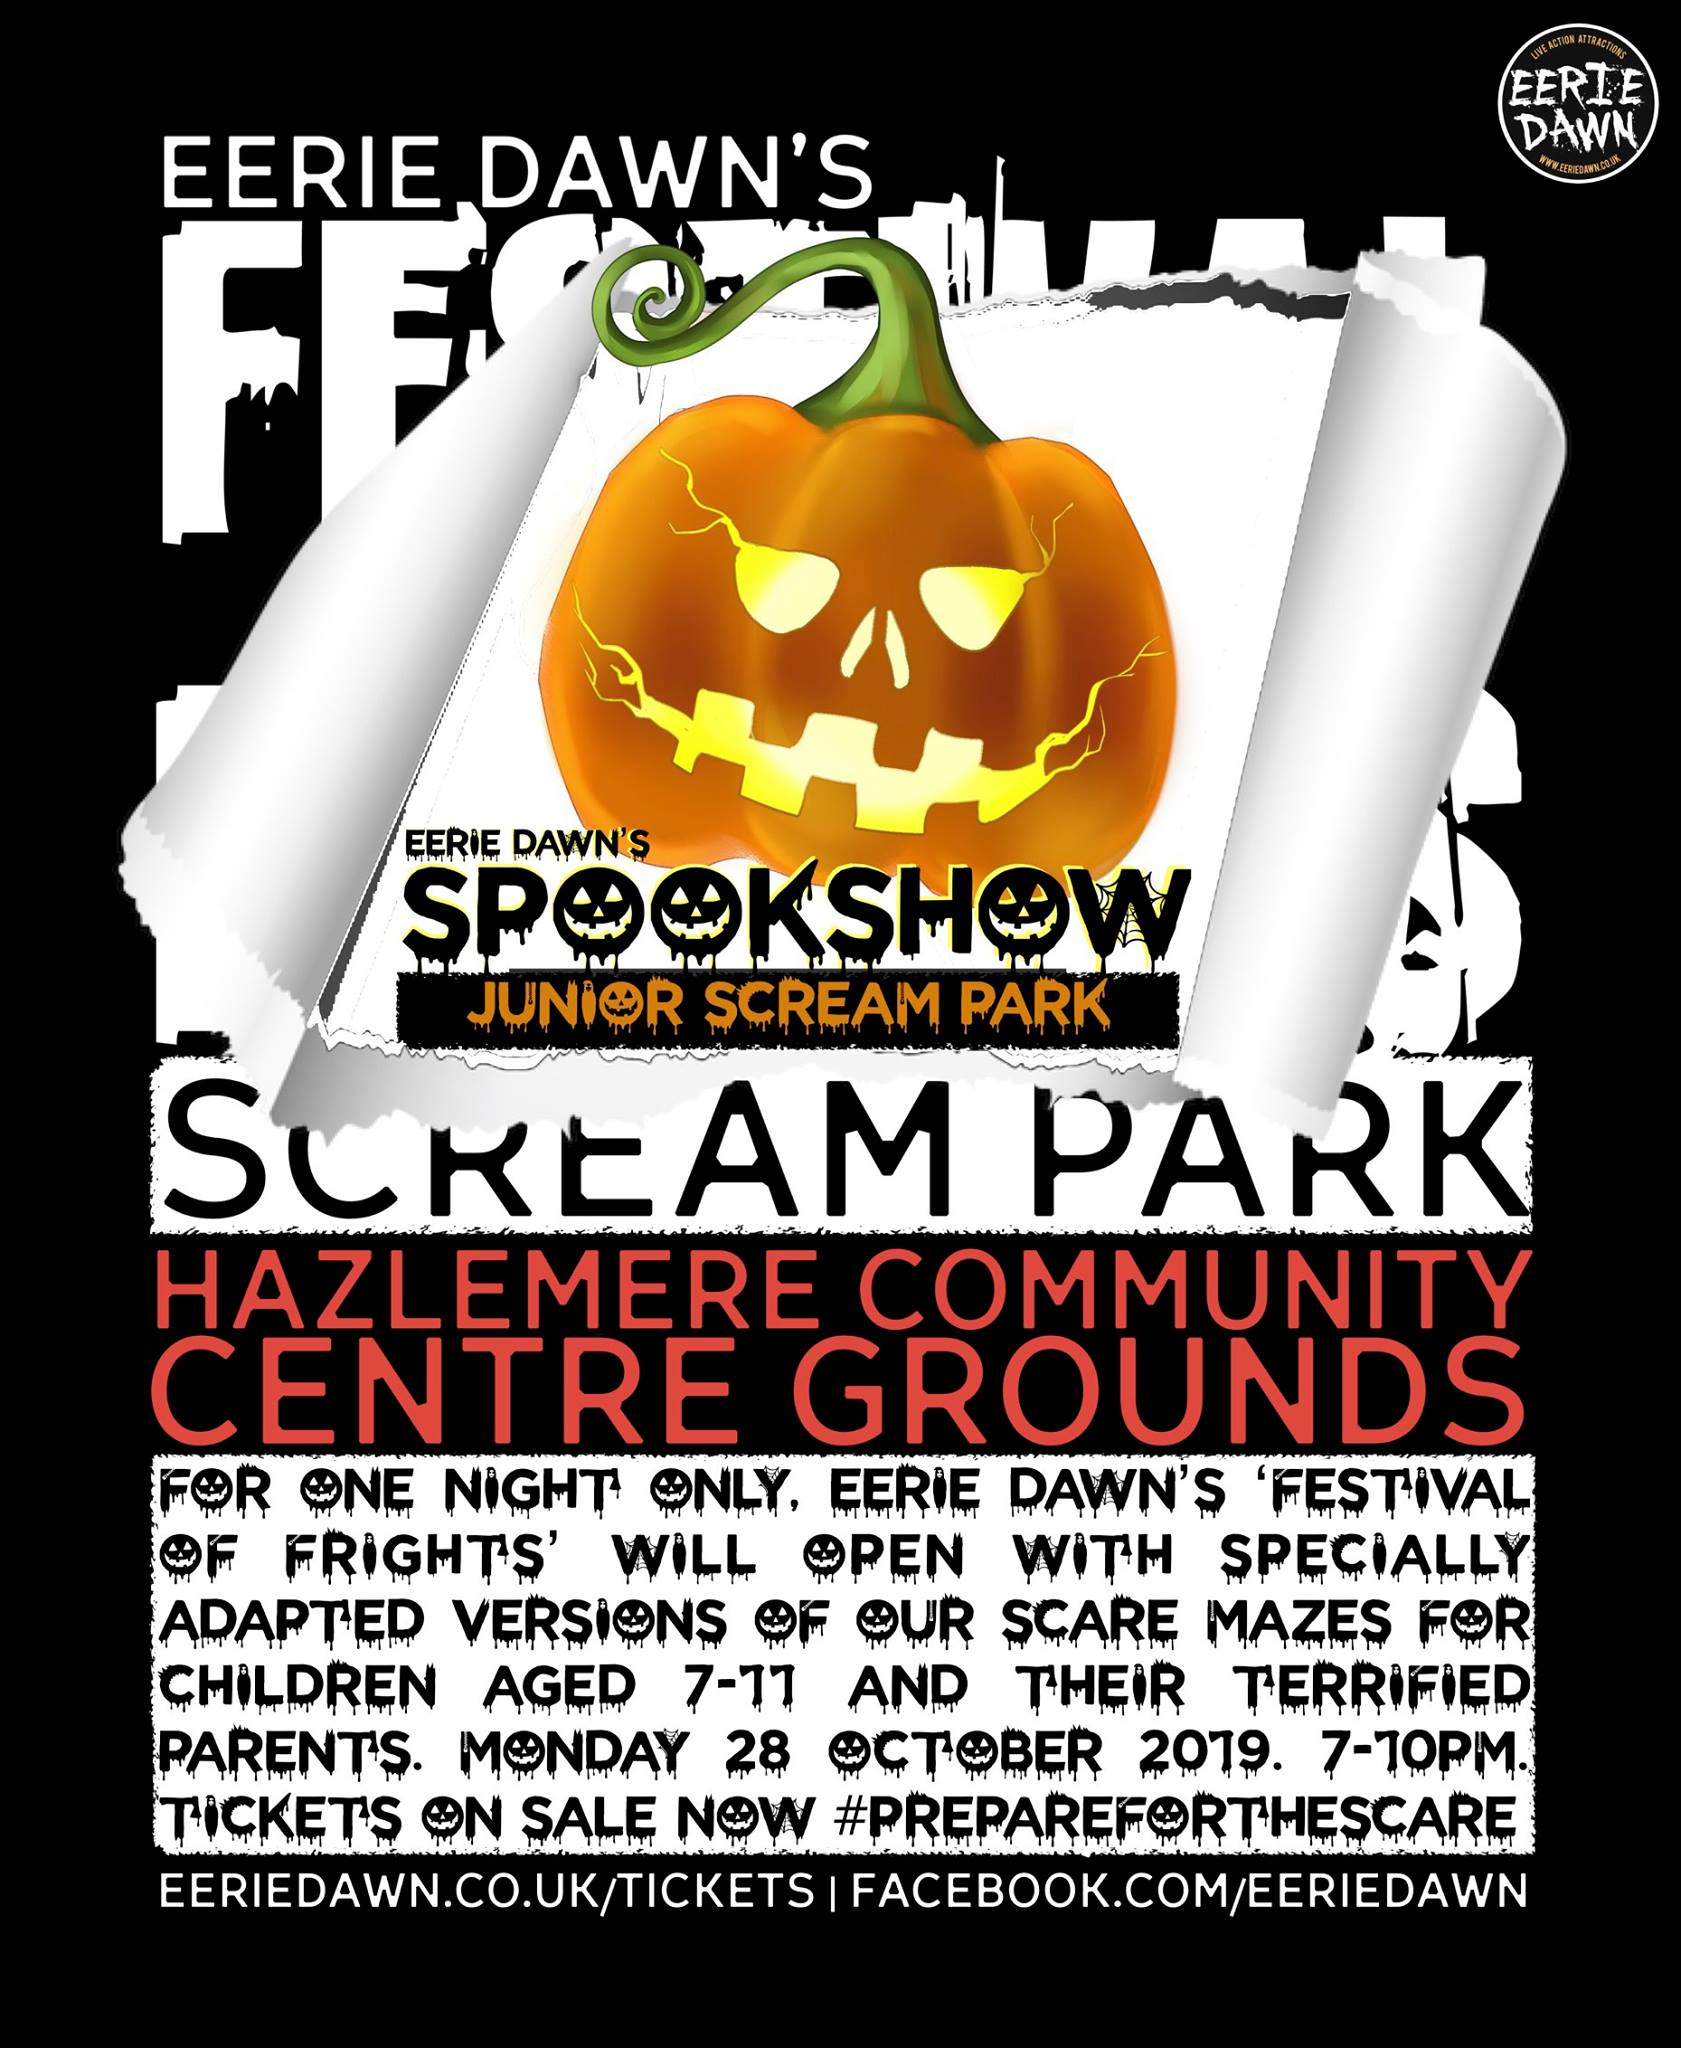 Eerie Dawn's SpookShow - Junior Scream Park